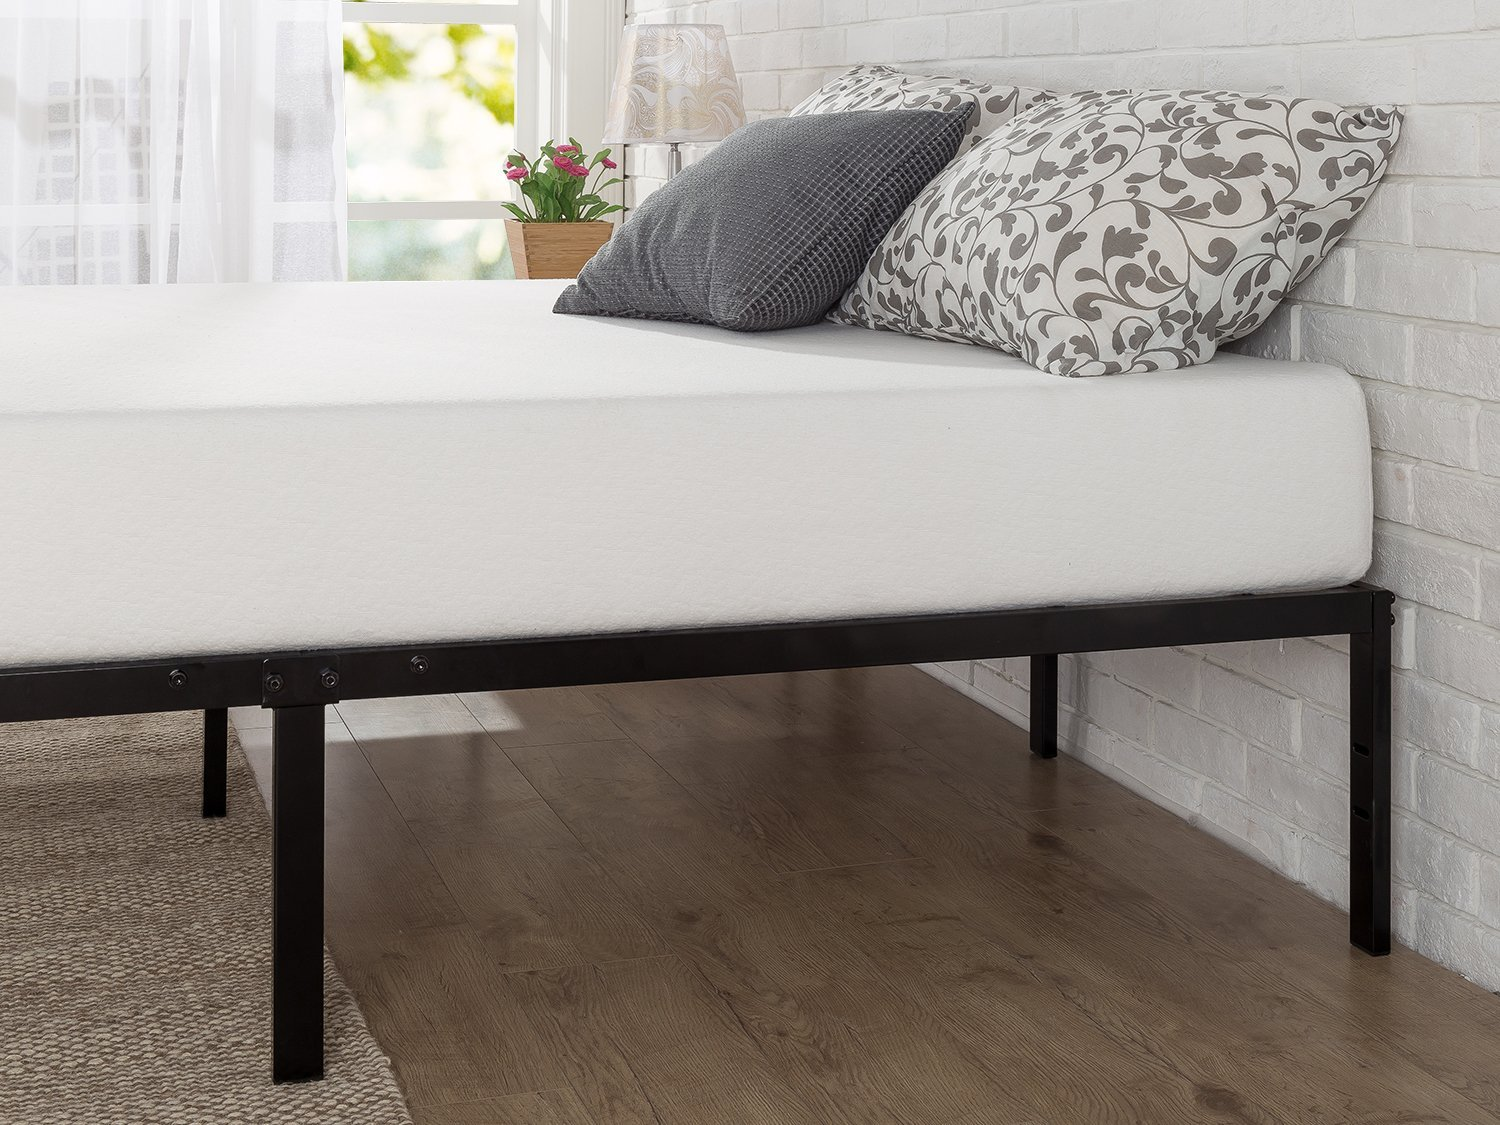 zinus platform bed instructions pdf